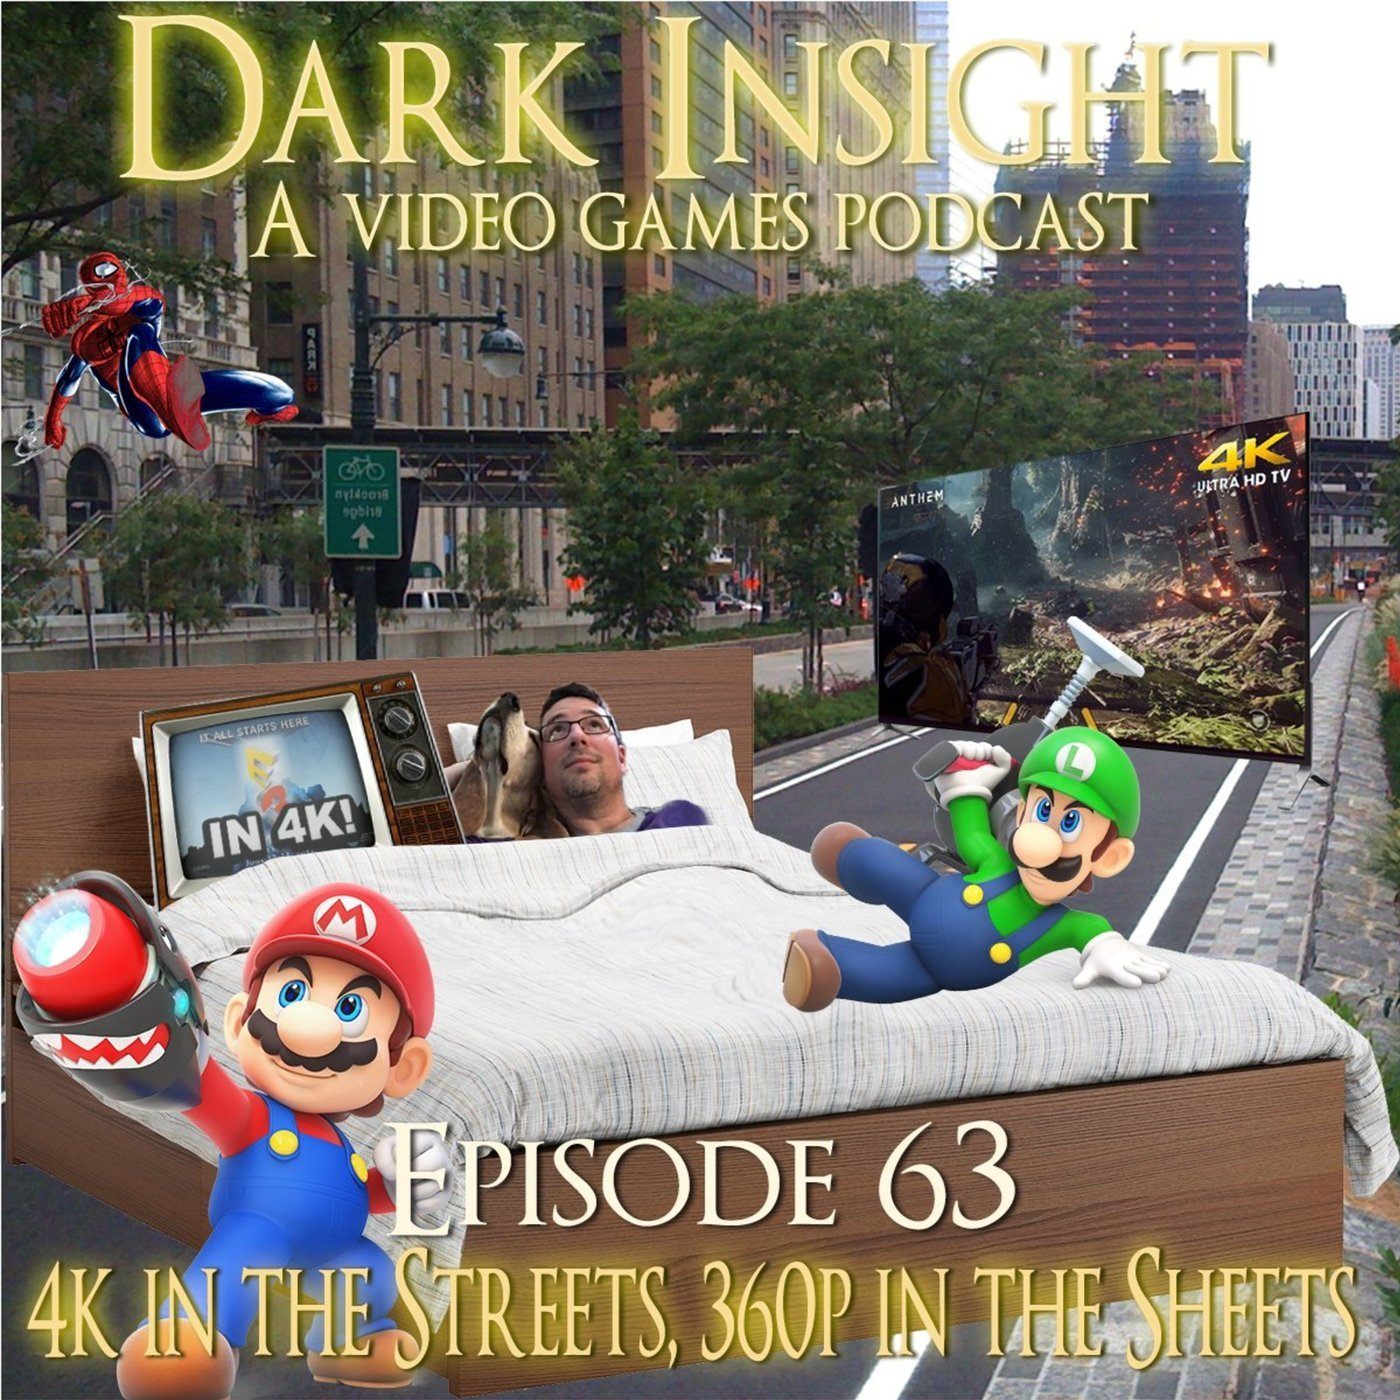 Dark Insight Episode 63: 4K in the Streets, 360P in the Sheets